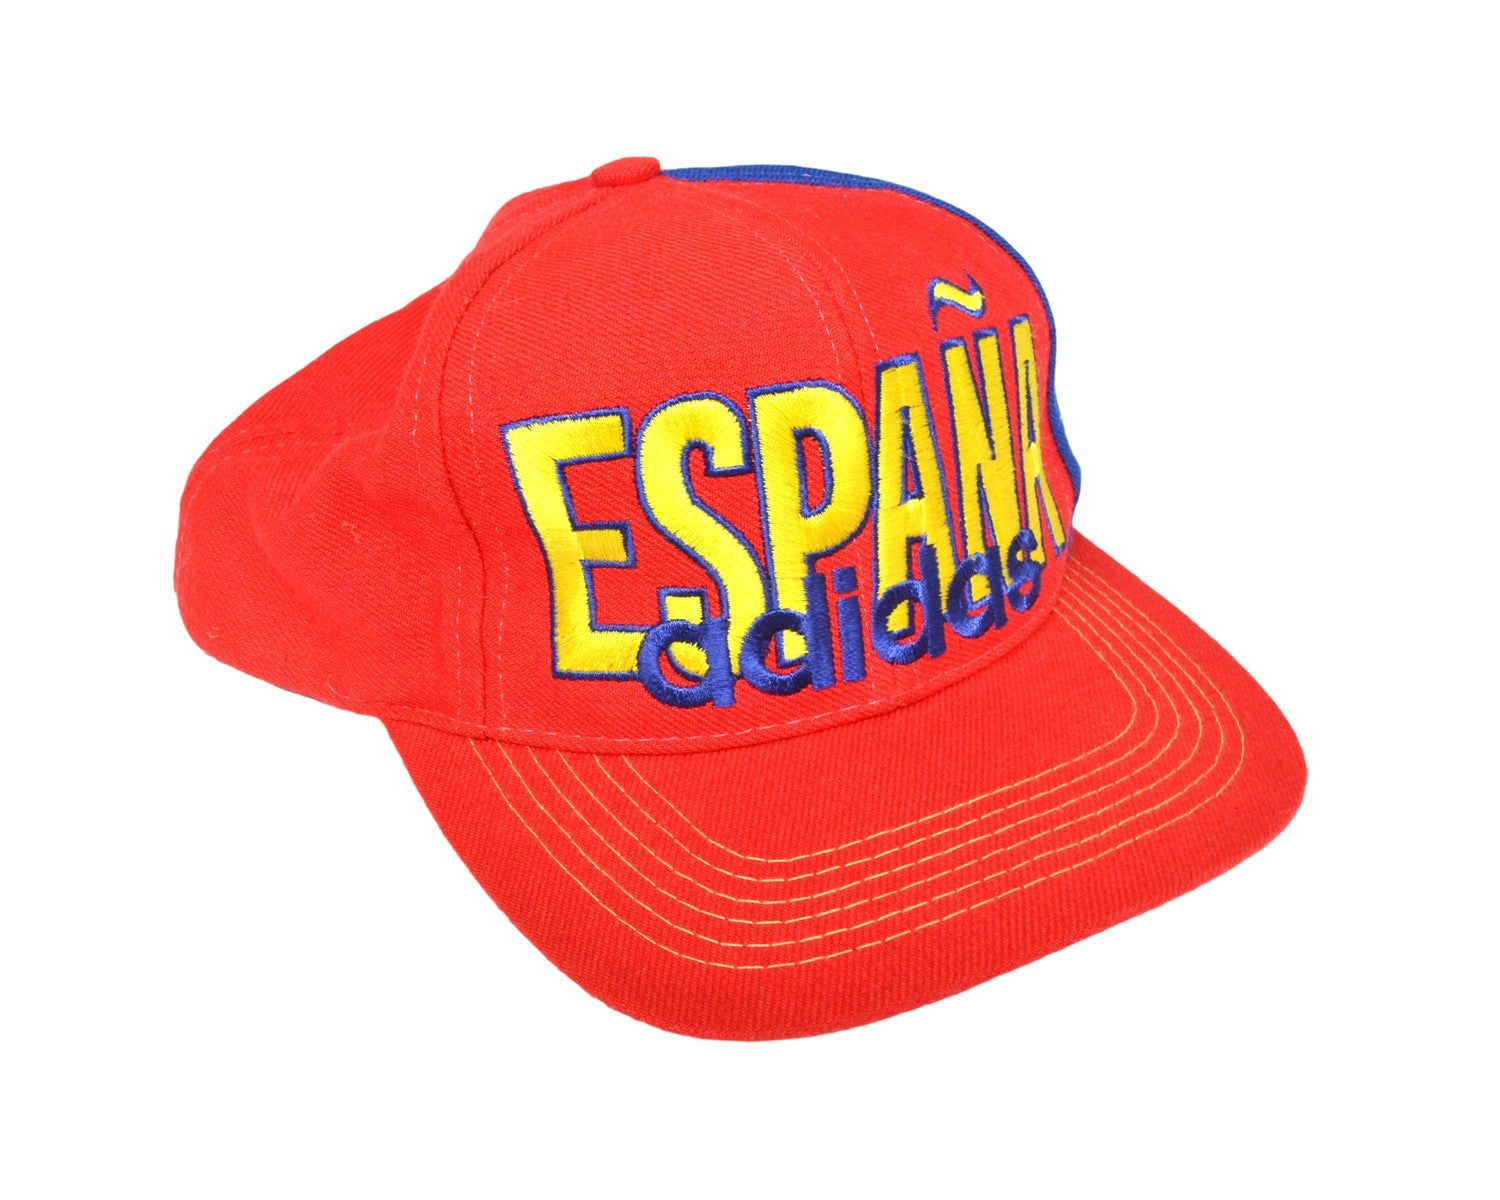 Image of 1994 Adidas Spain Cap